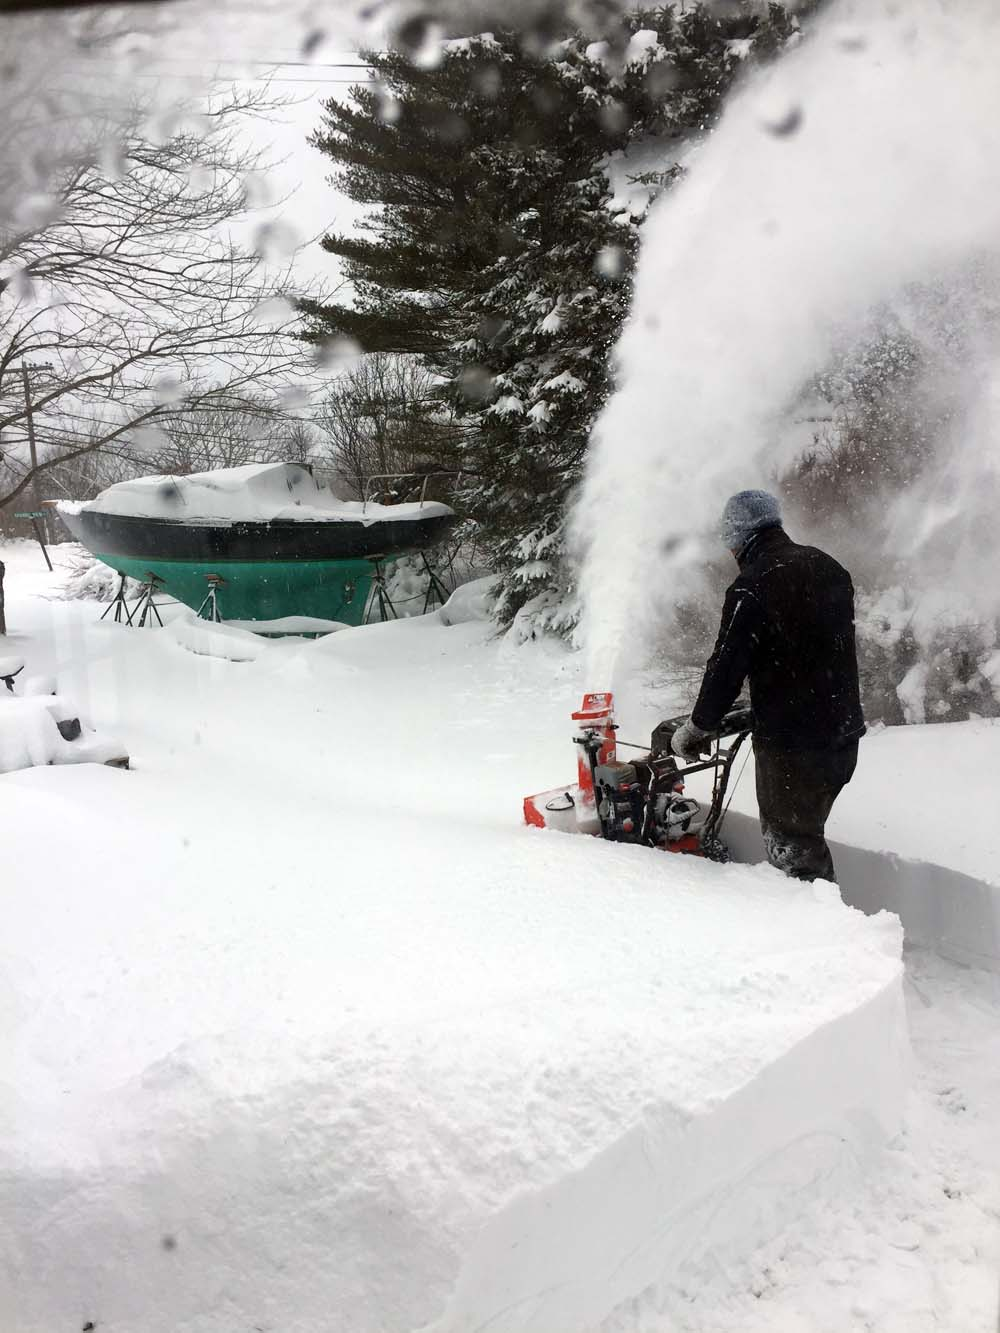 Snow-blowing is fun when you don't have to do it all the time!